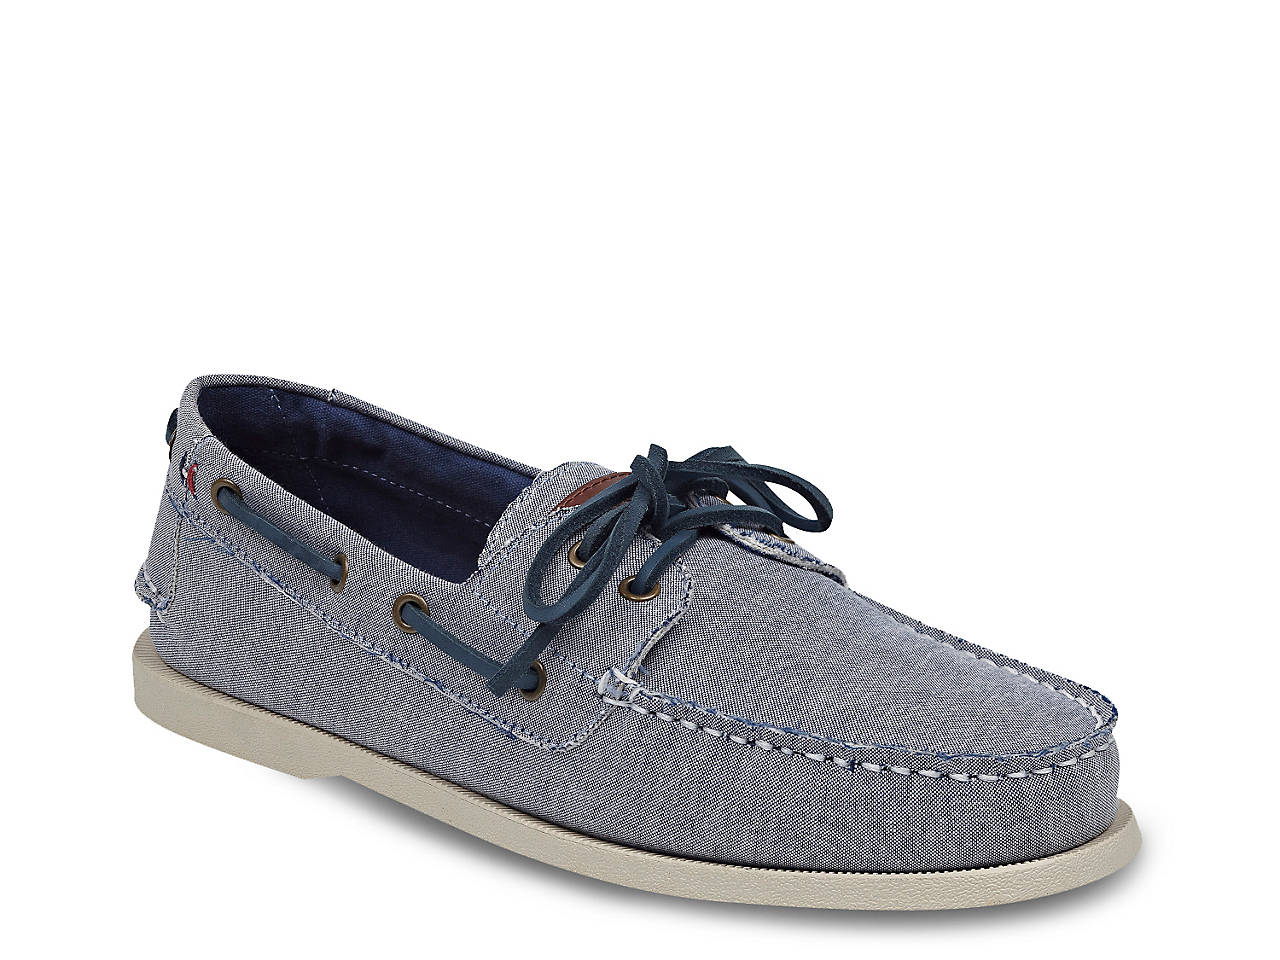 Tommy hilfiger bowman 5 boat shoe mens shoes dsw bowman 5 boat shoe publicscrutiny